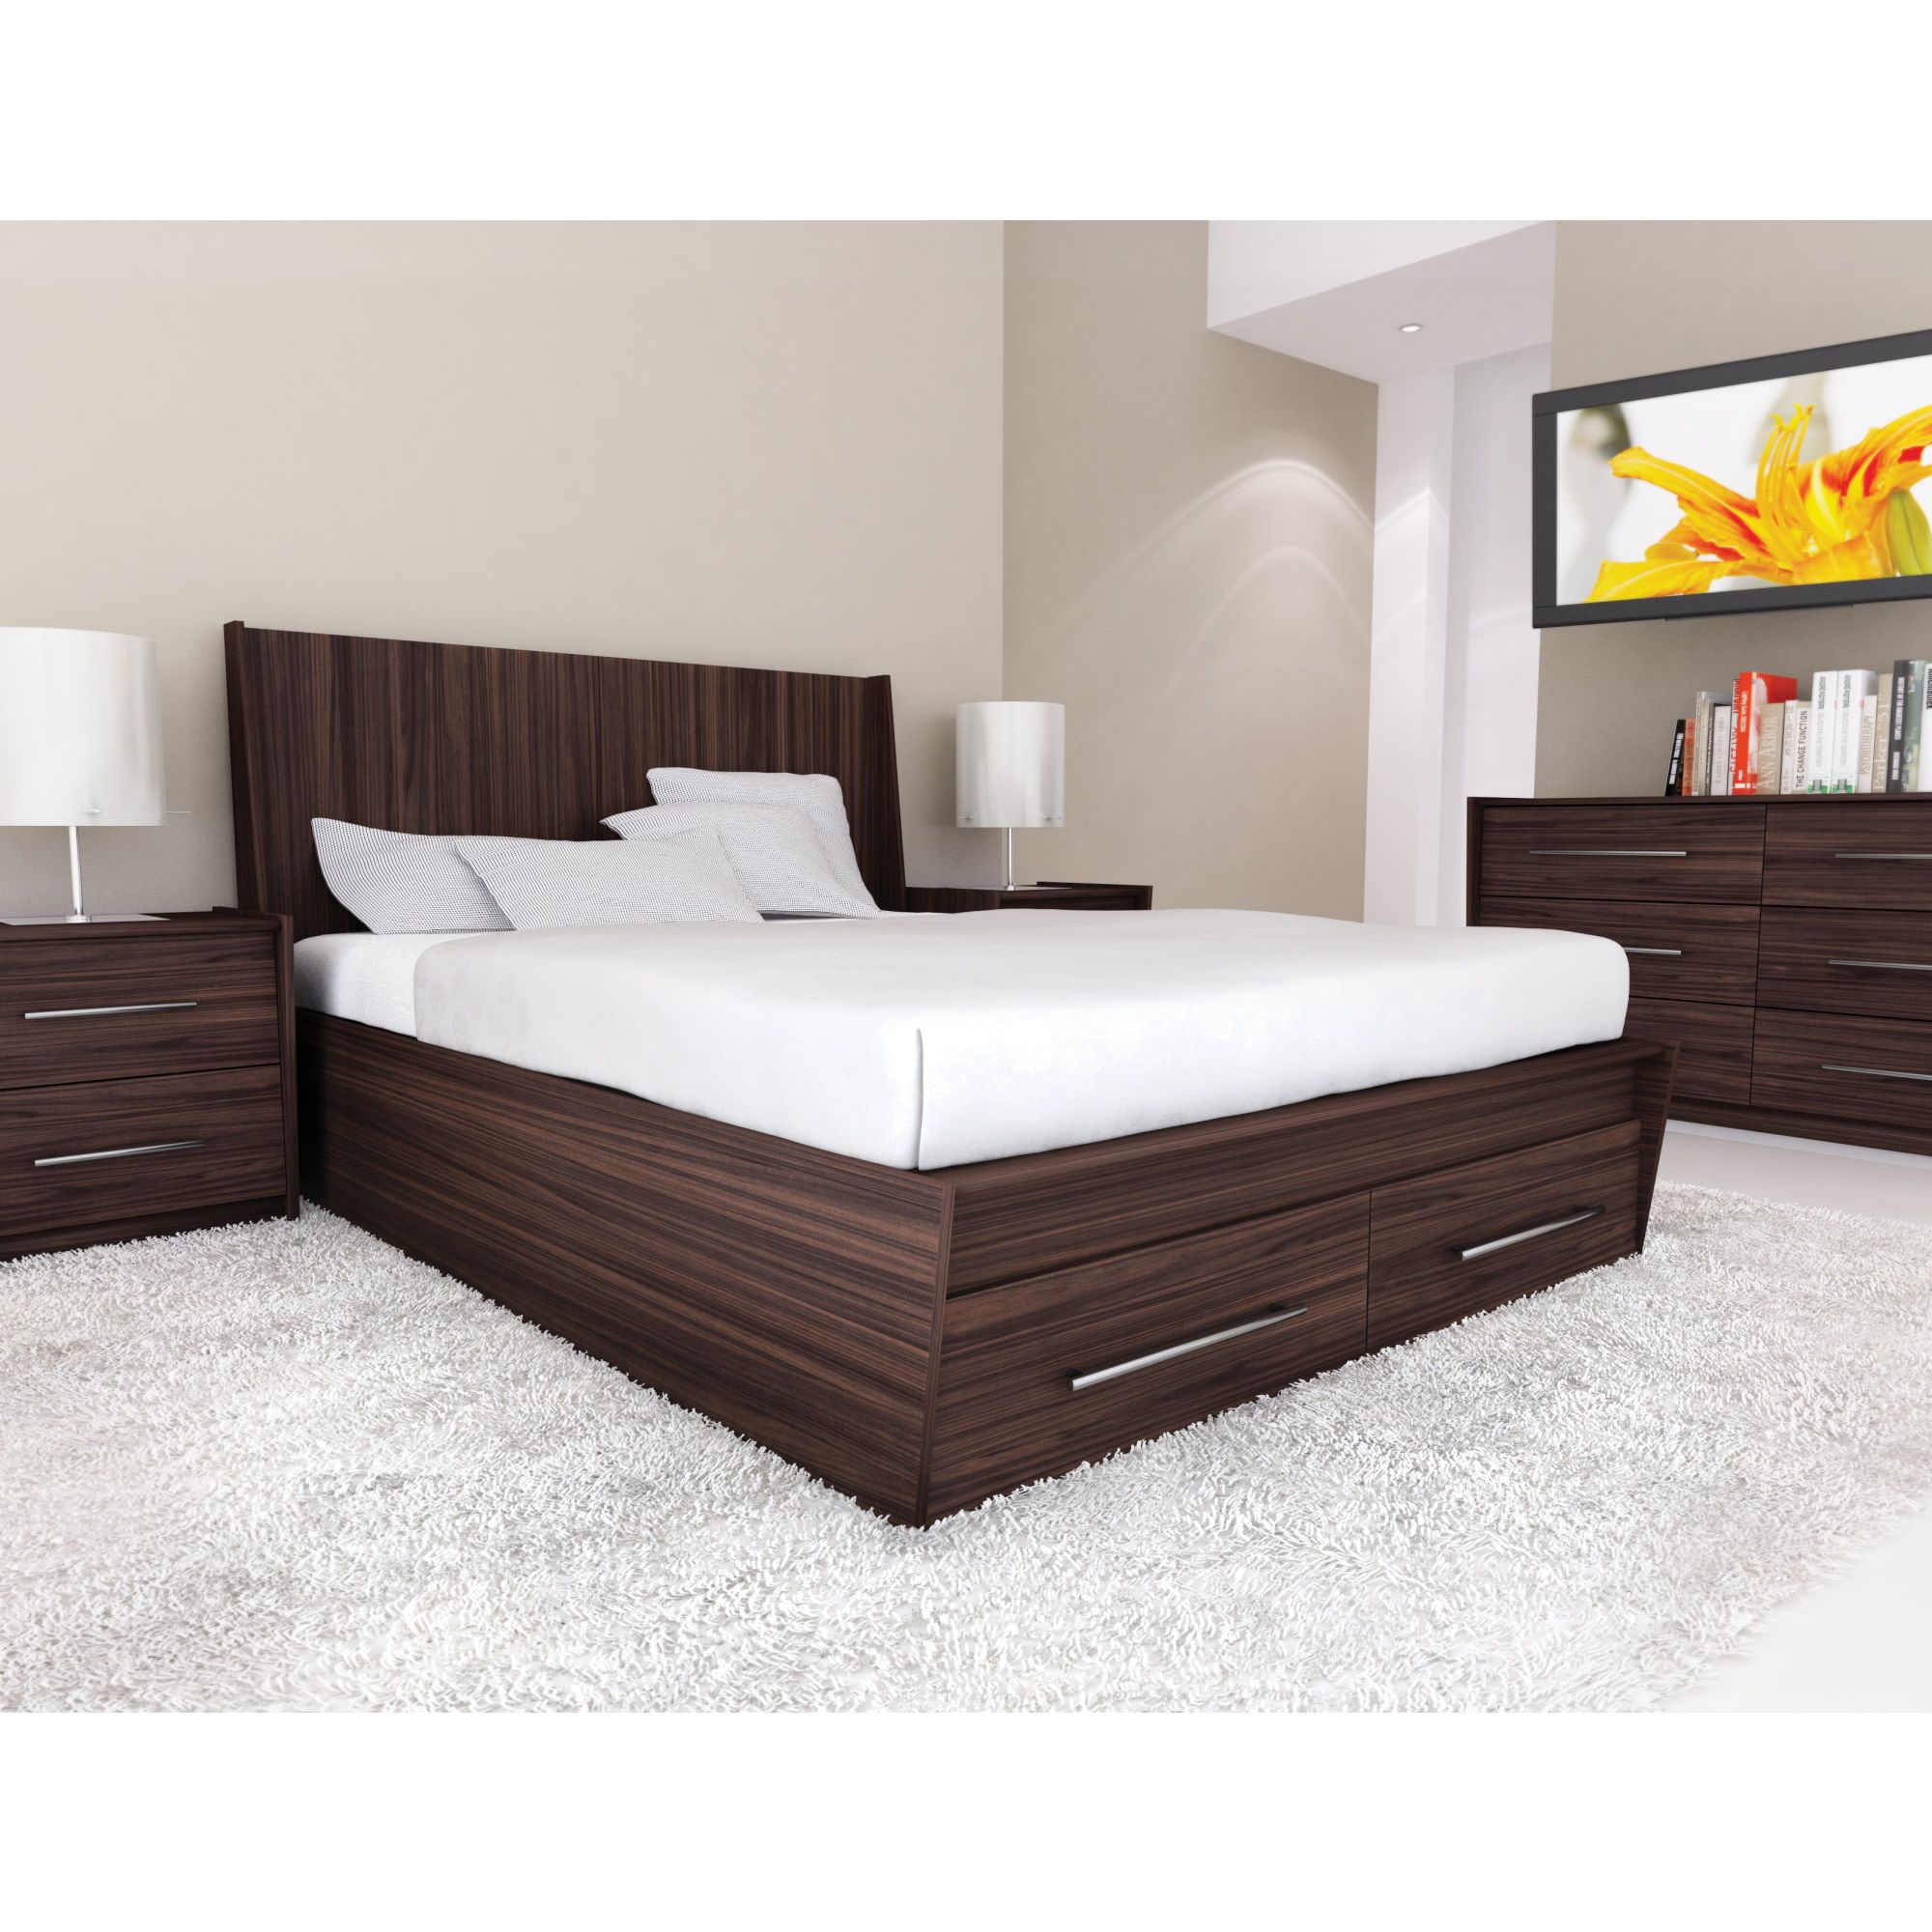 Bed designs for your comfortable bedroom interior design for New bed decoration